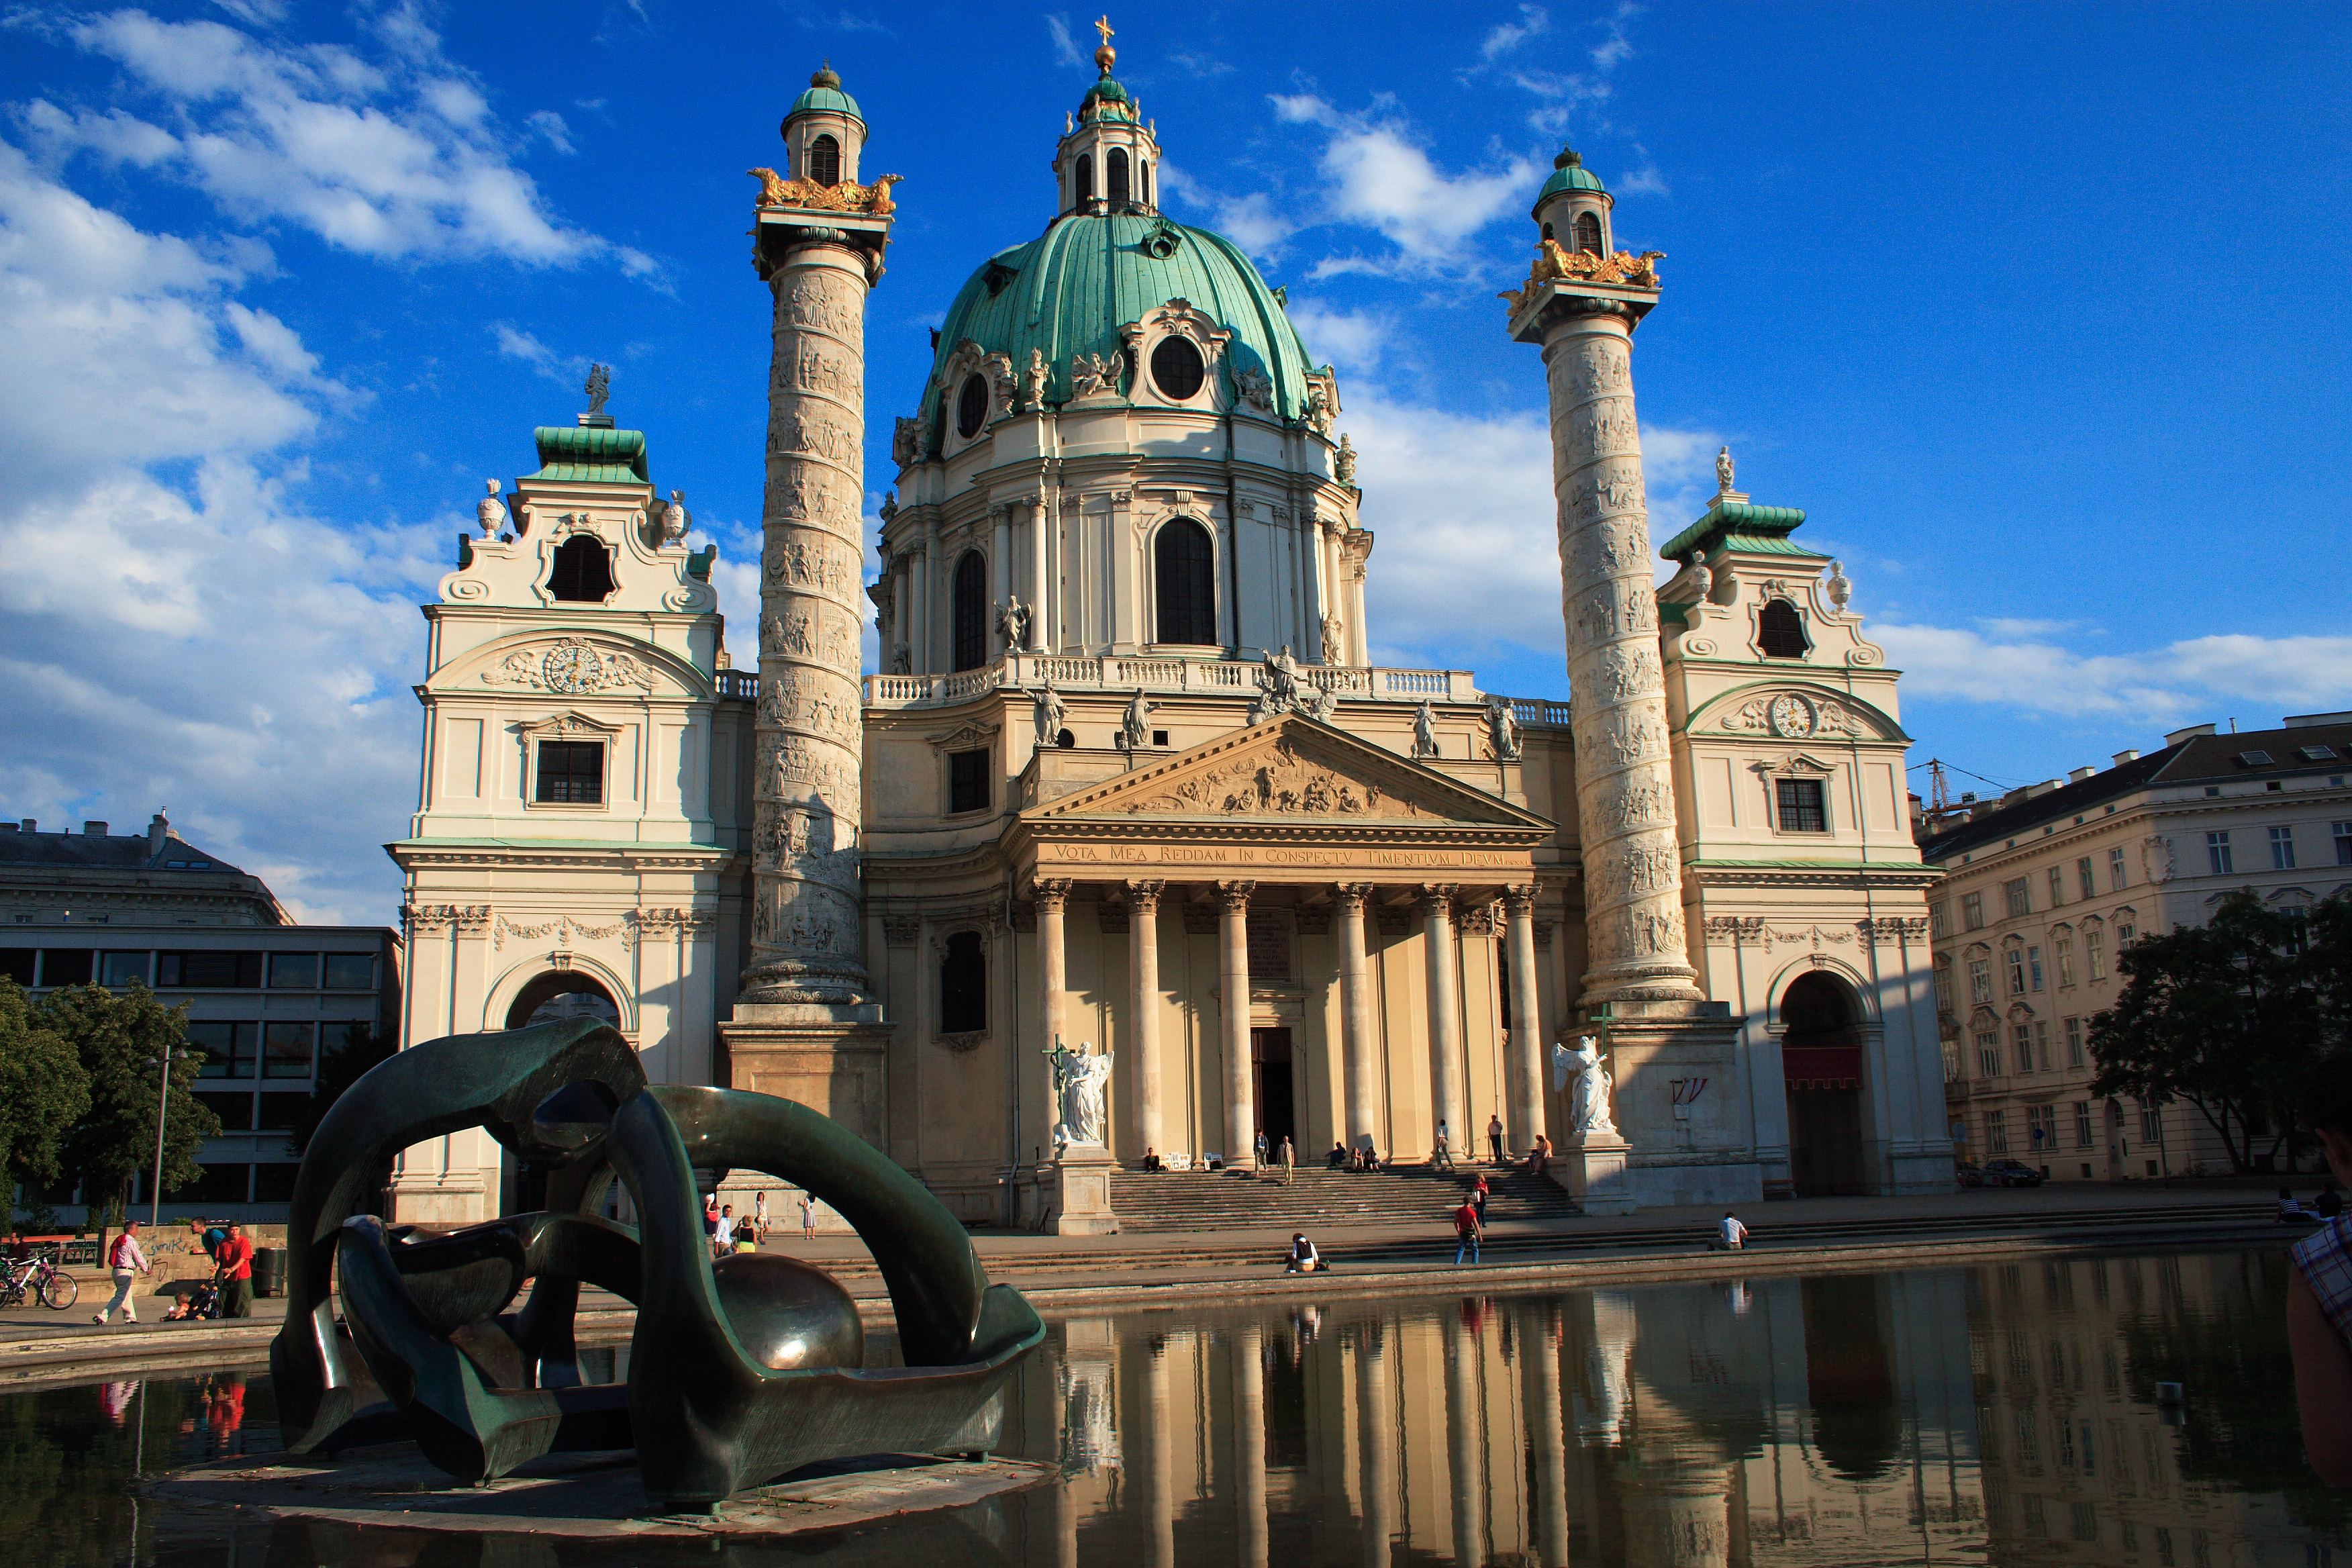 https://i0.wp.com/upload.wikimedia.org/wikipedia/commons/7/7b/Karlskirche,_Vienna.jpg